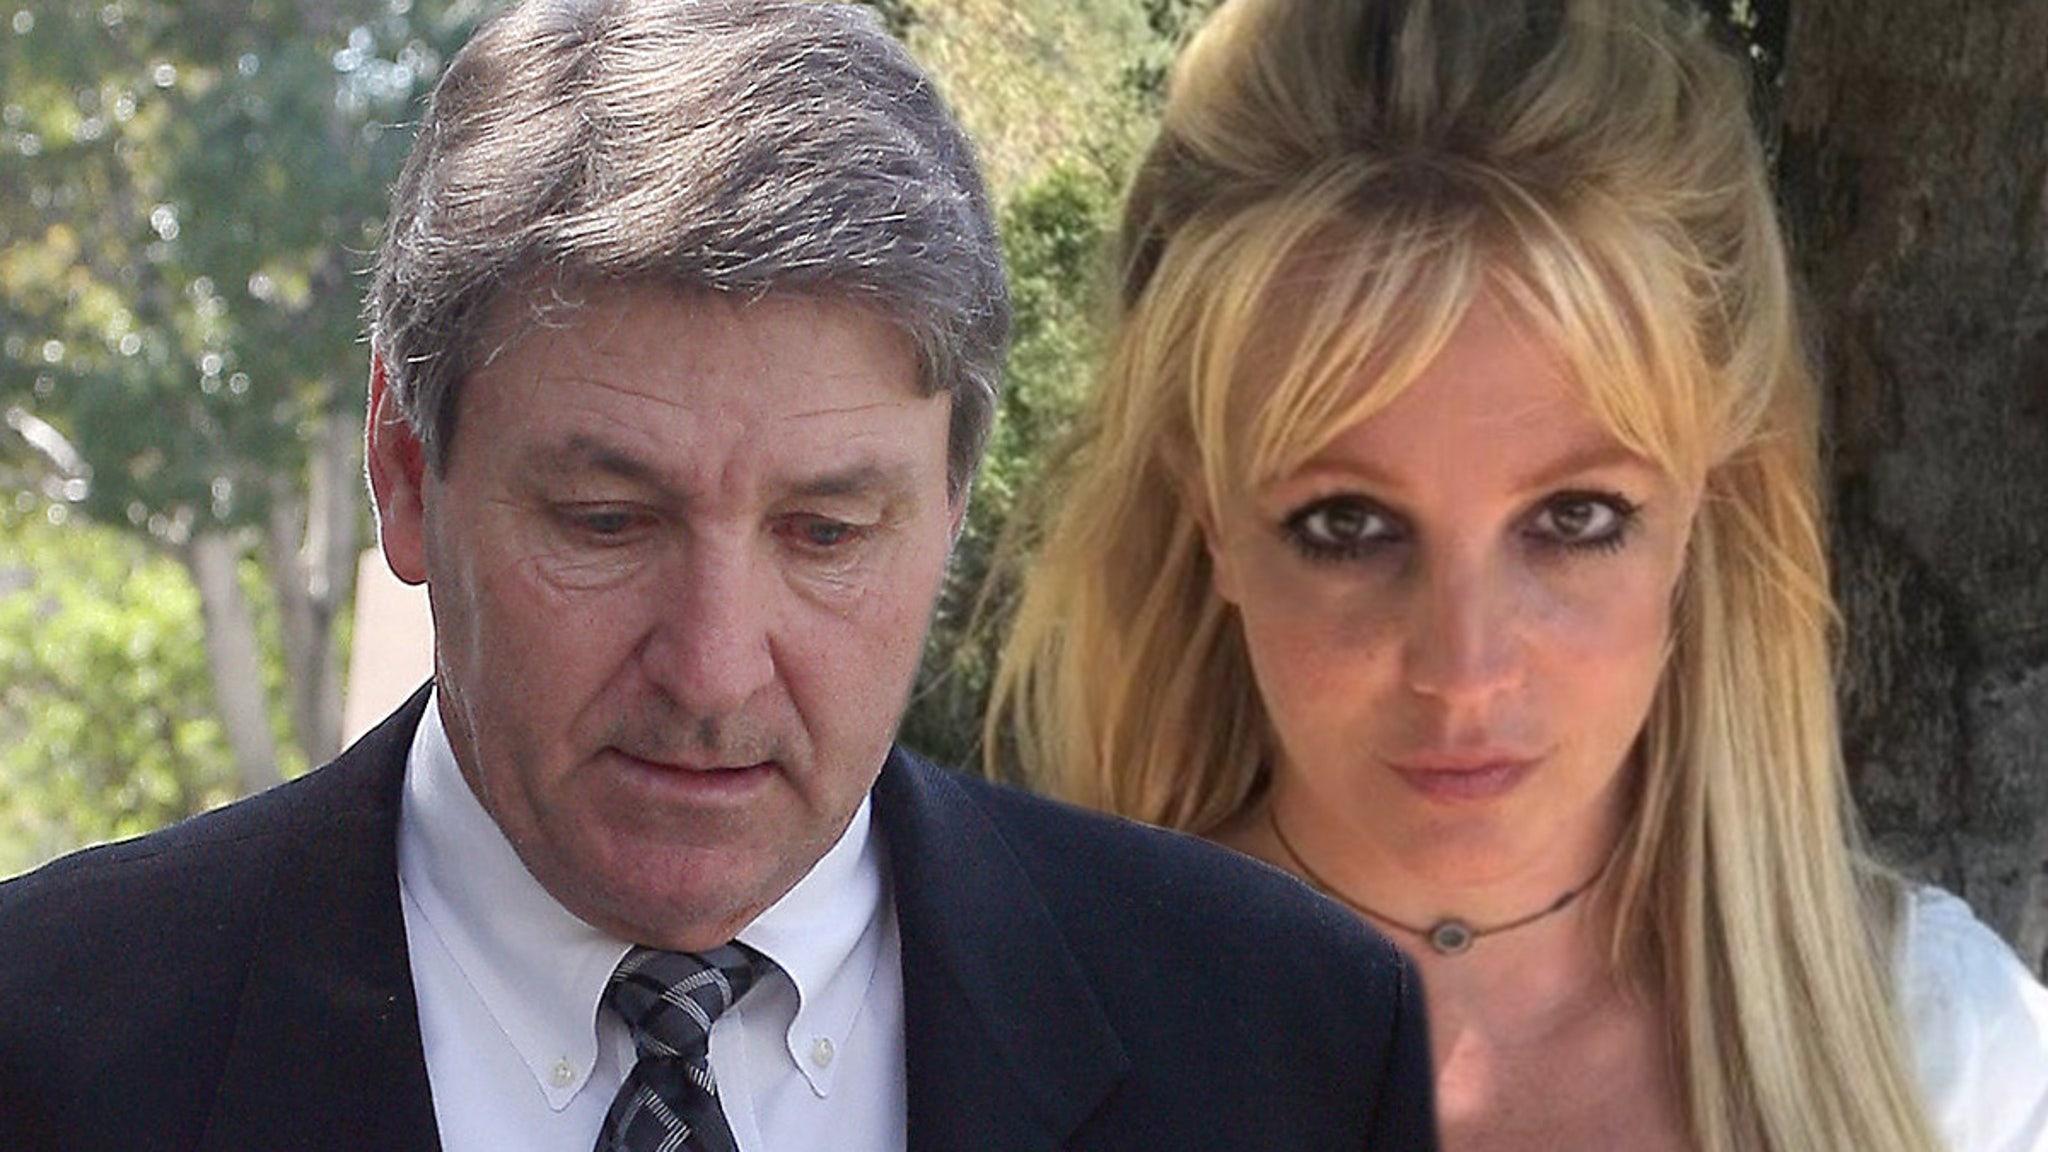 Britney Spears' Dad Says It's Too Soon For Her to Weigh in on Conservatorship